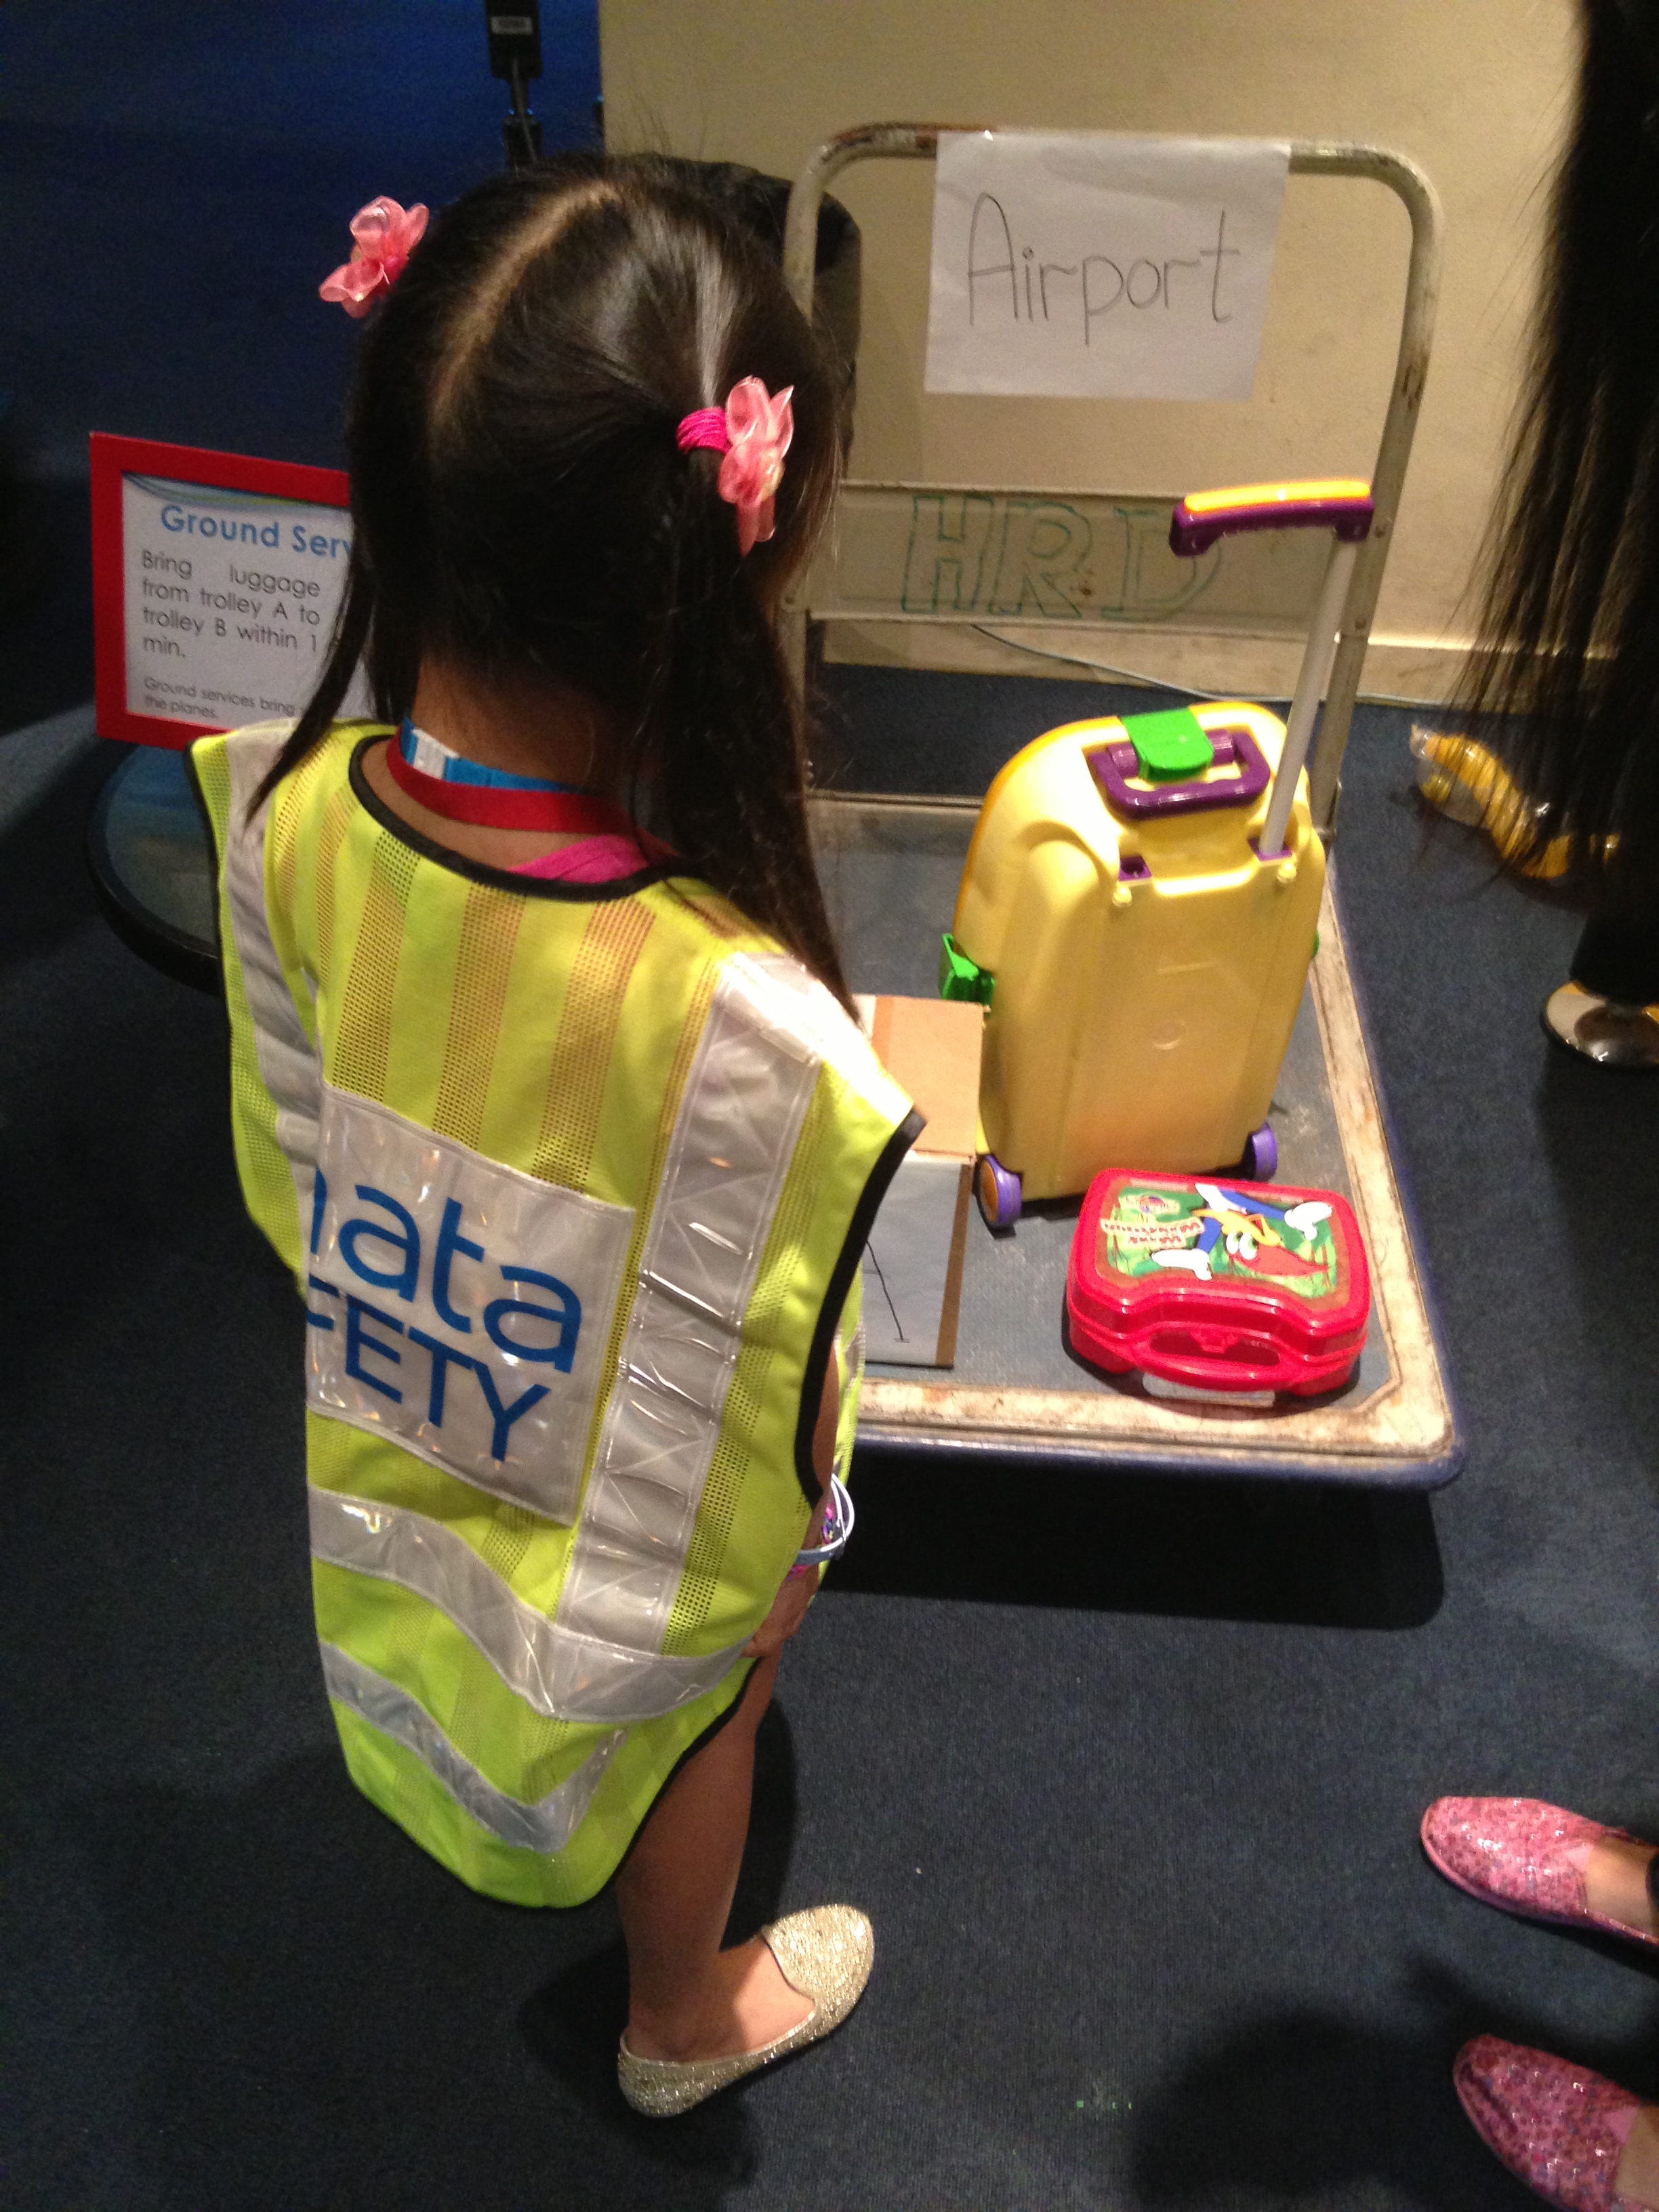 Kids@work Baggage handling